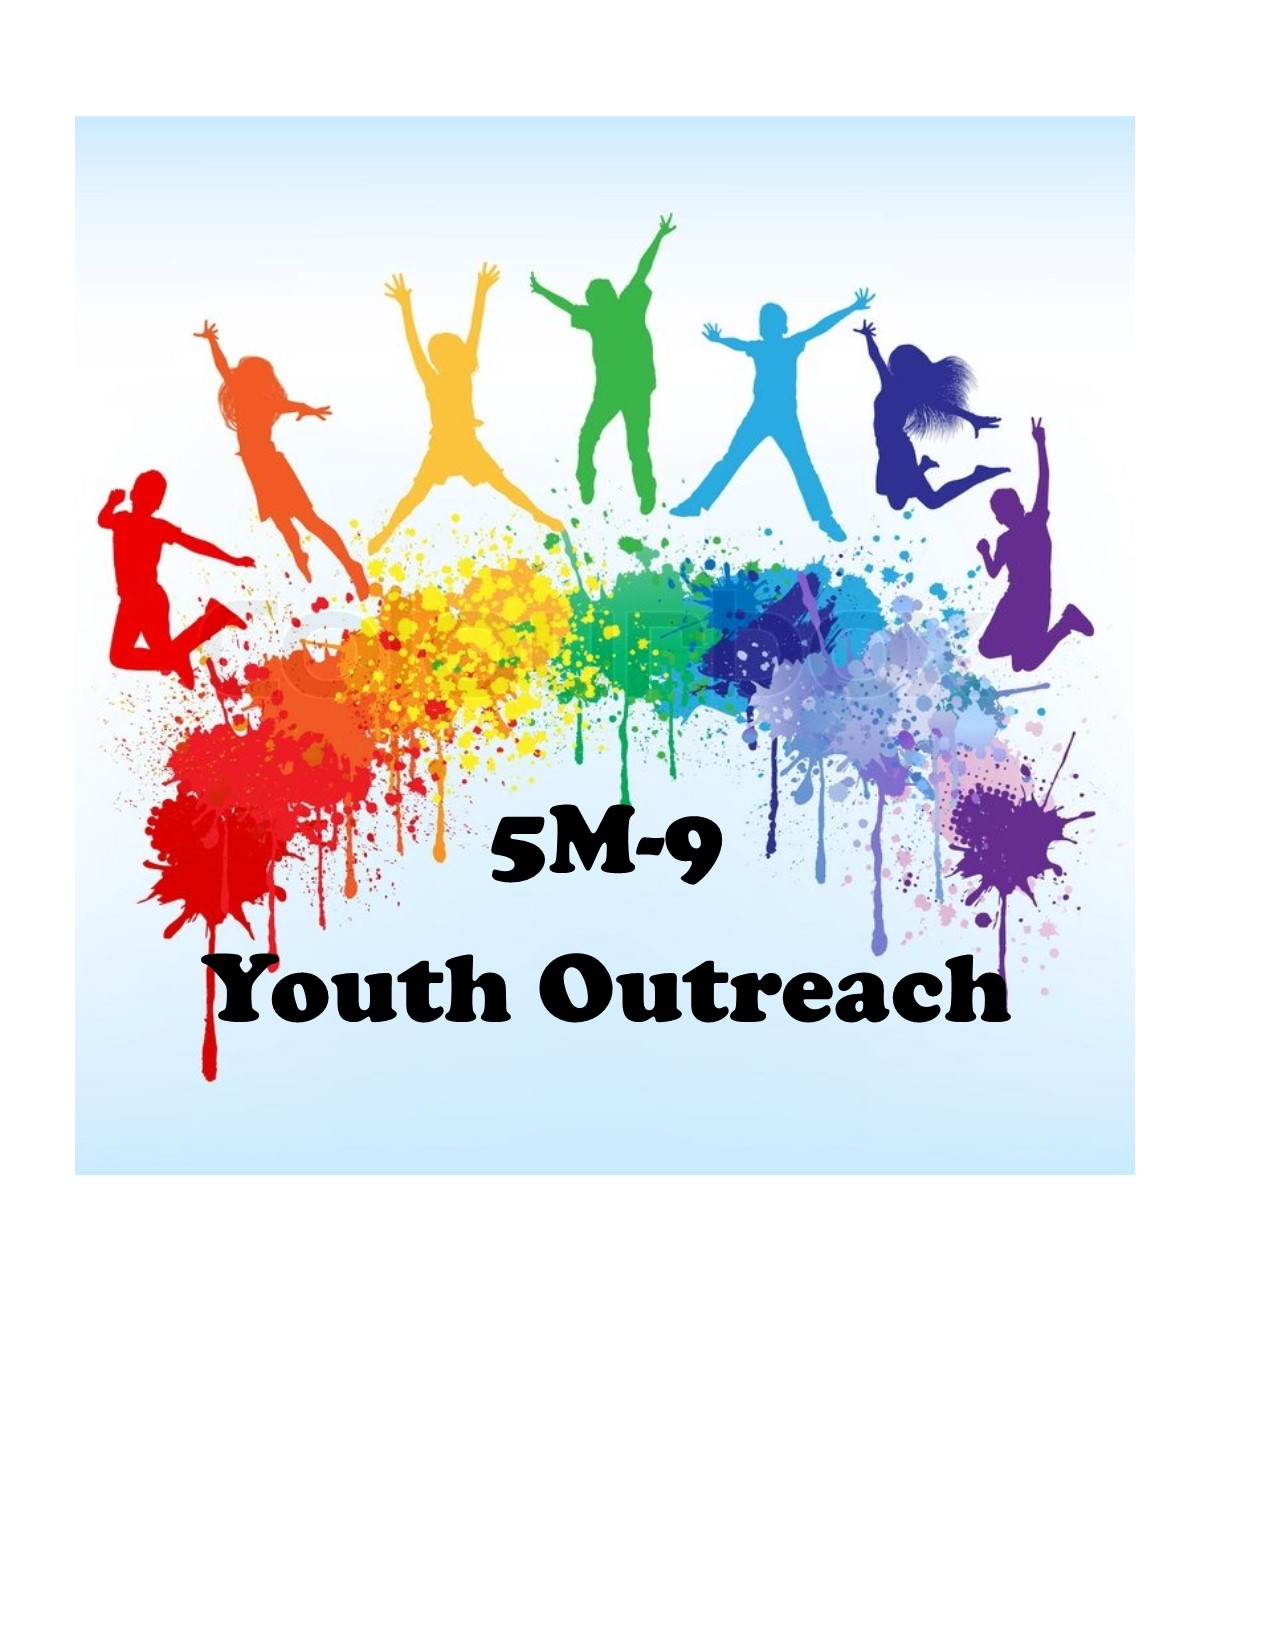 Please click here for information on the 5m-9 Youth Outreach scholarship application